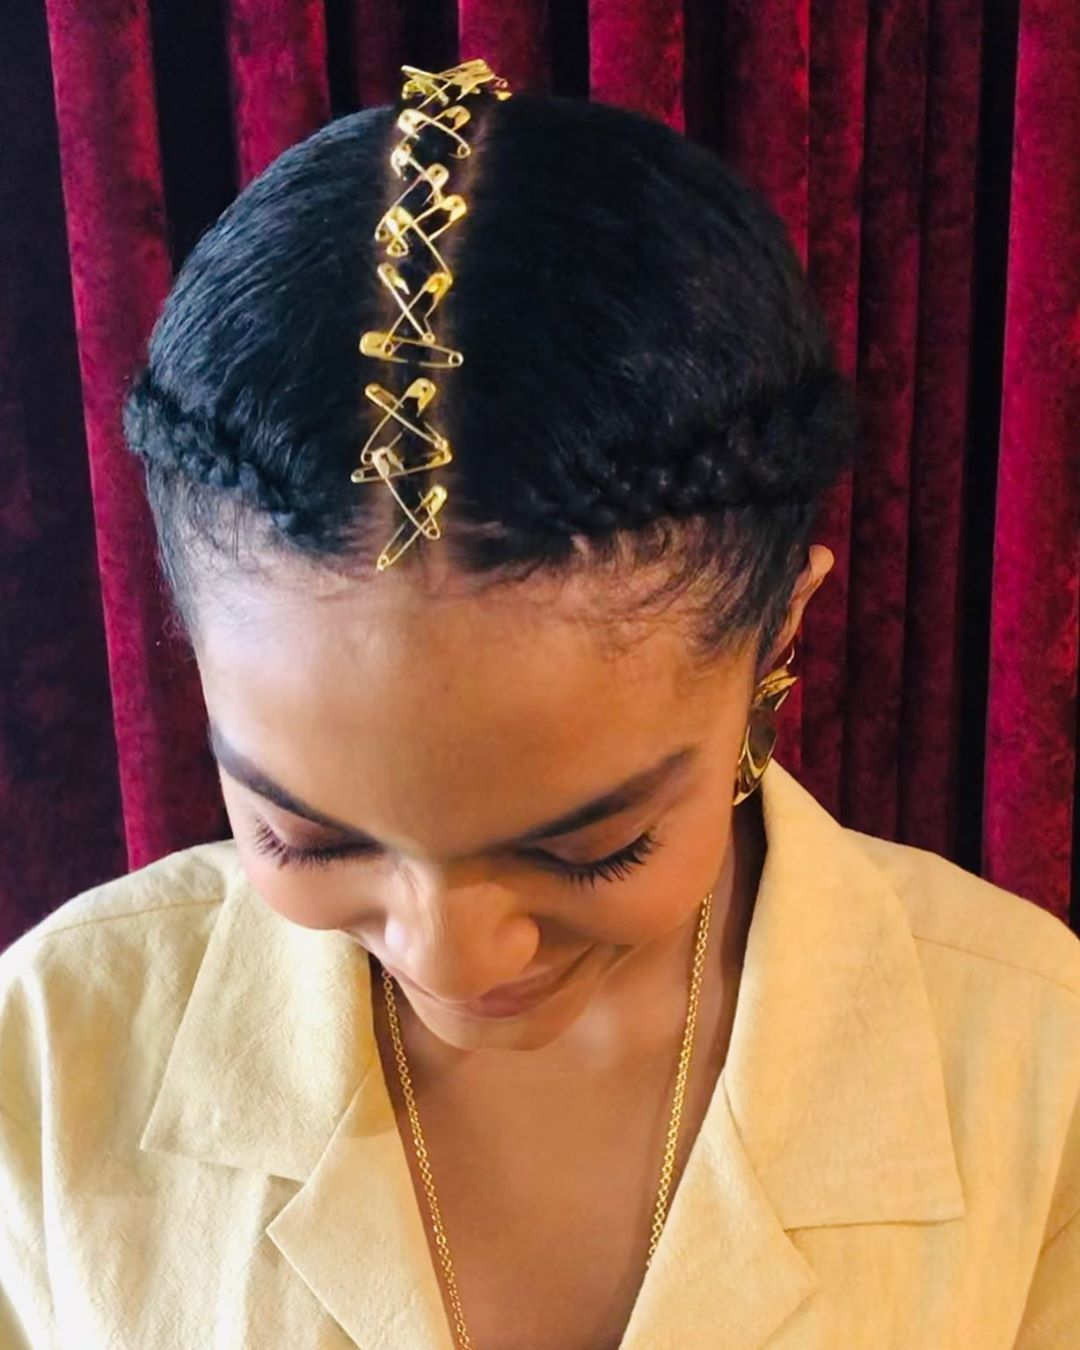 From afar, it looks like Yara Shahidi had gold dusted along her center part; but upon further inspection, you'll find she was wearing a braided middle part ADD @mwazomela FOR MORE PINS LIKE THIS DAILY #braidedstyle #braidinspo #hairinspo #cornrowstyle #beautifulhair #naturalhairstyles